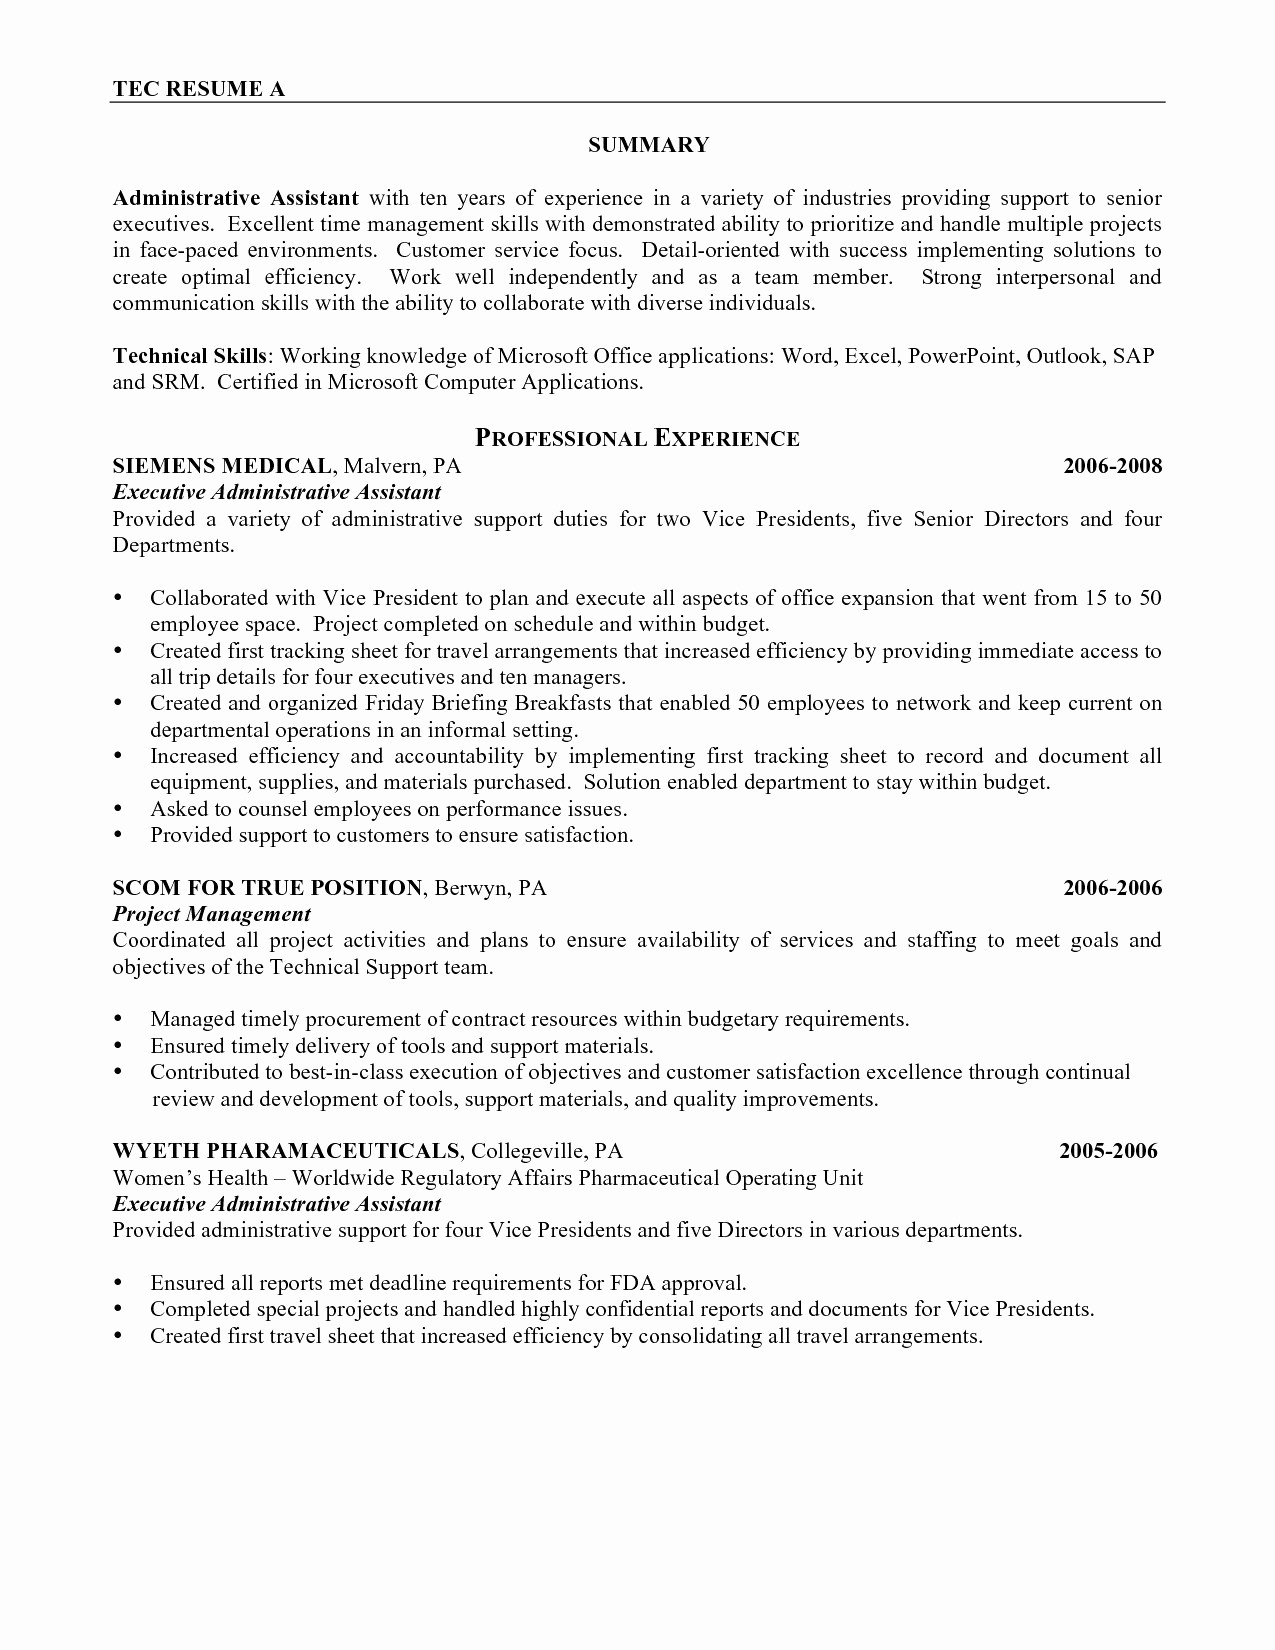 Medical Coding Resume Template - Free Certified Medical assistant Resume Samples Resume Resume